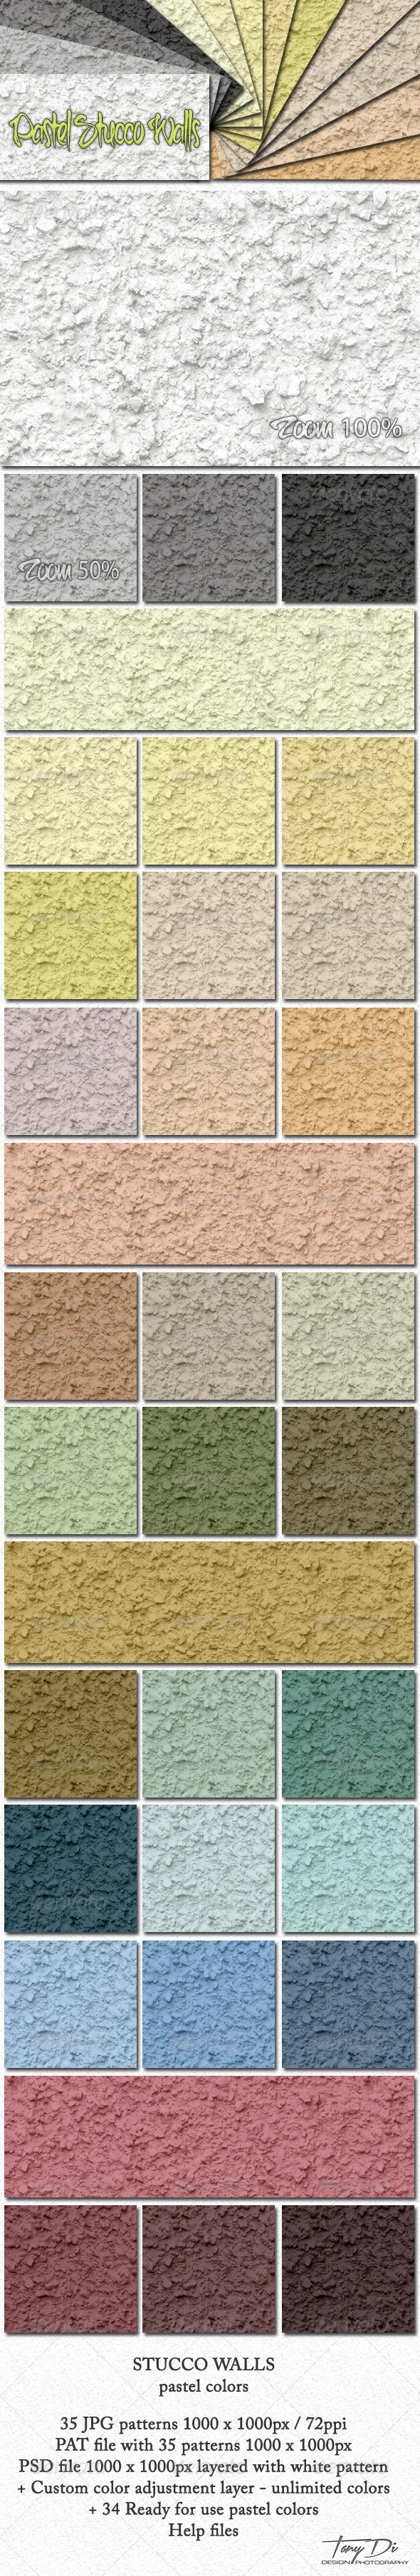 GraphicRiver Pastel Stucco Walls 5389286